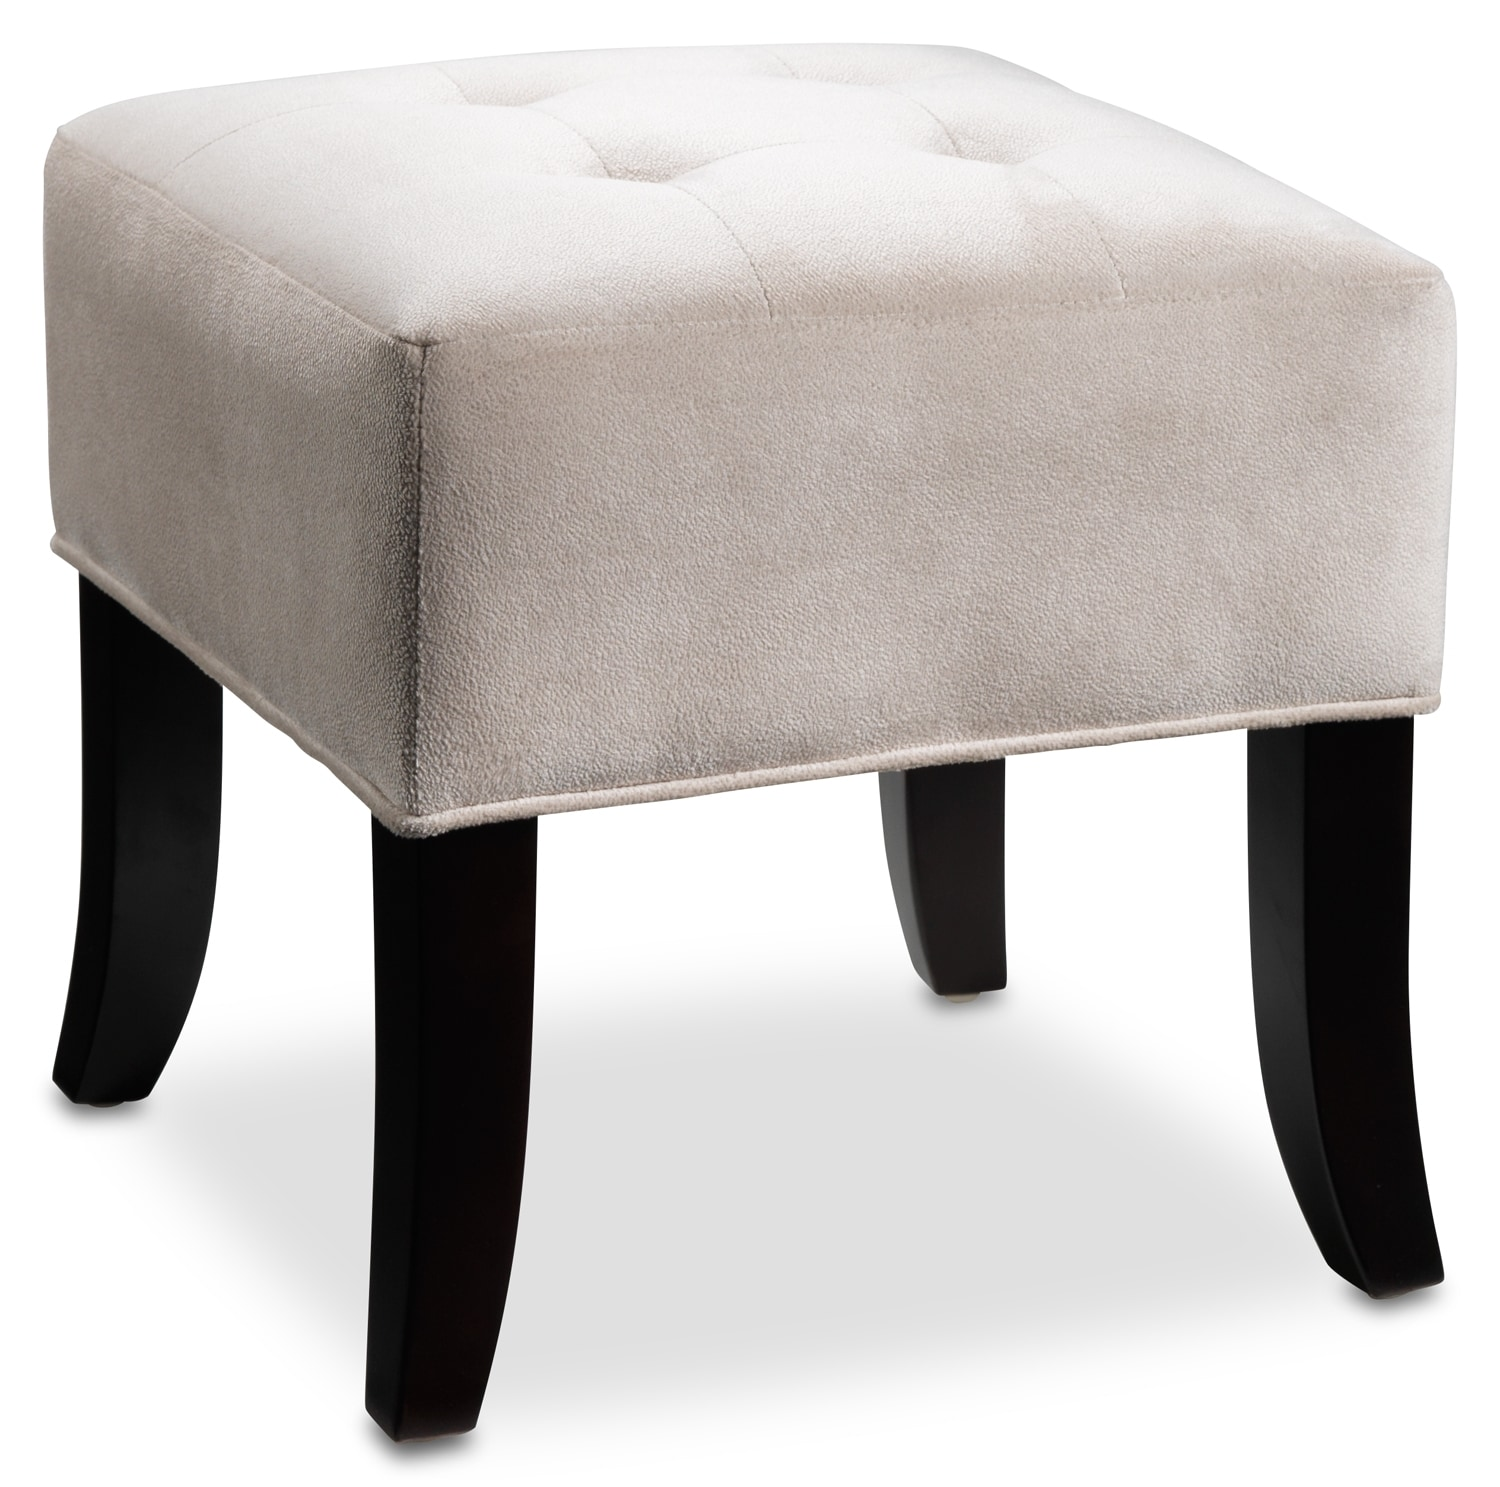 Accent and Occasional Furniture - Celo Fashion Ottoman - White